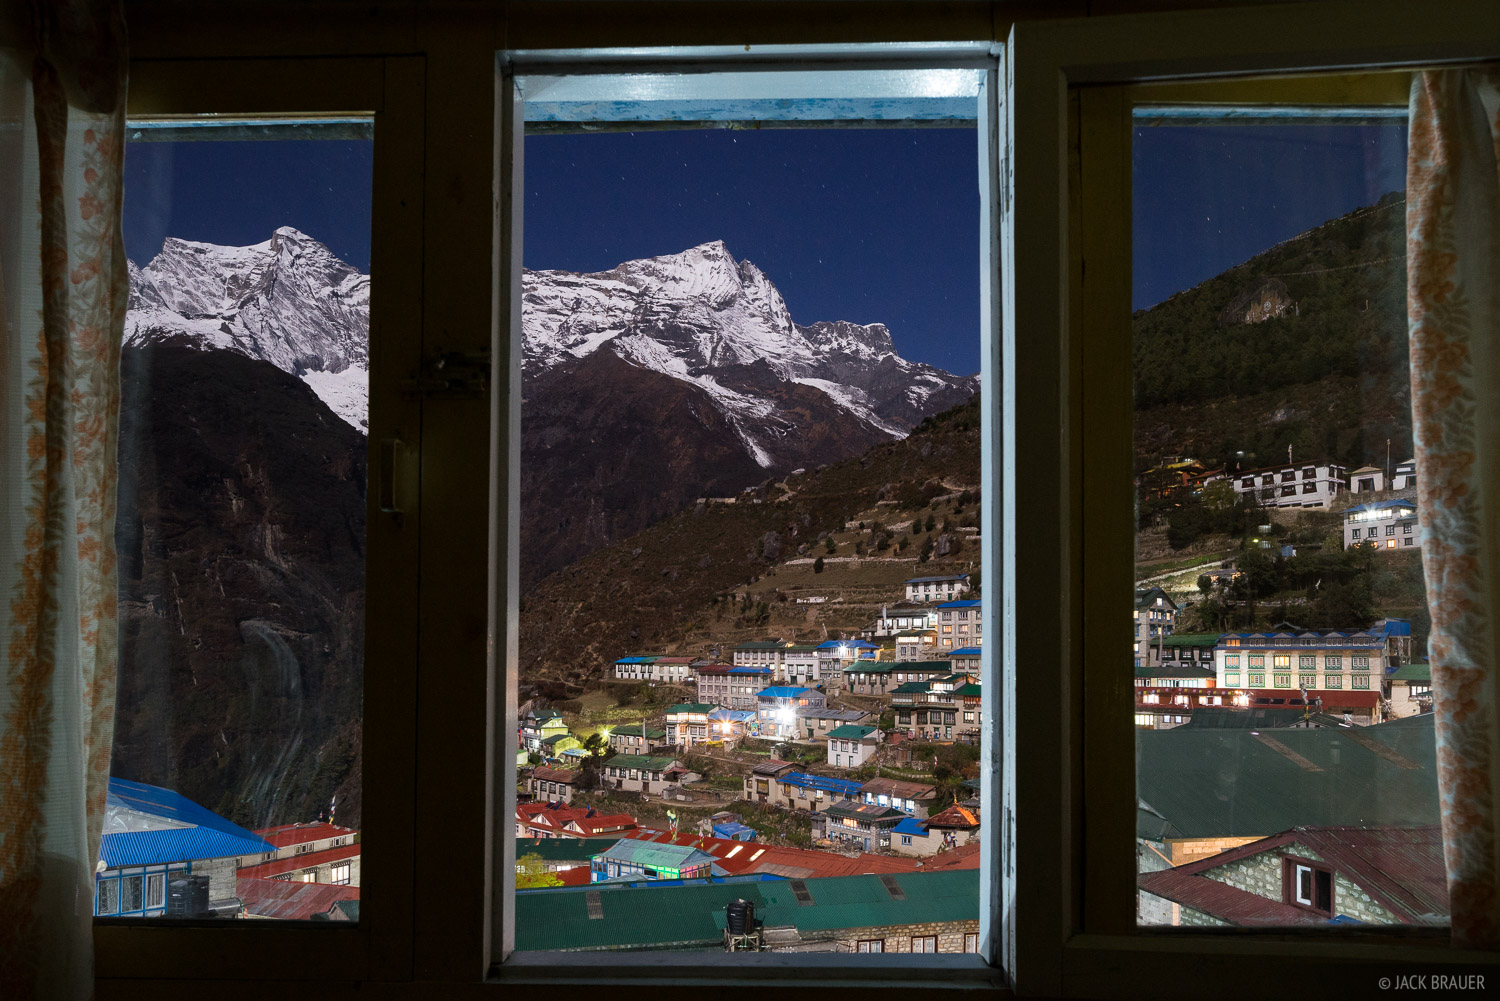 Himalaya,Khumbu,Namche Bazaar,Nepal,moonlight, window, photo